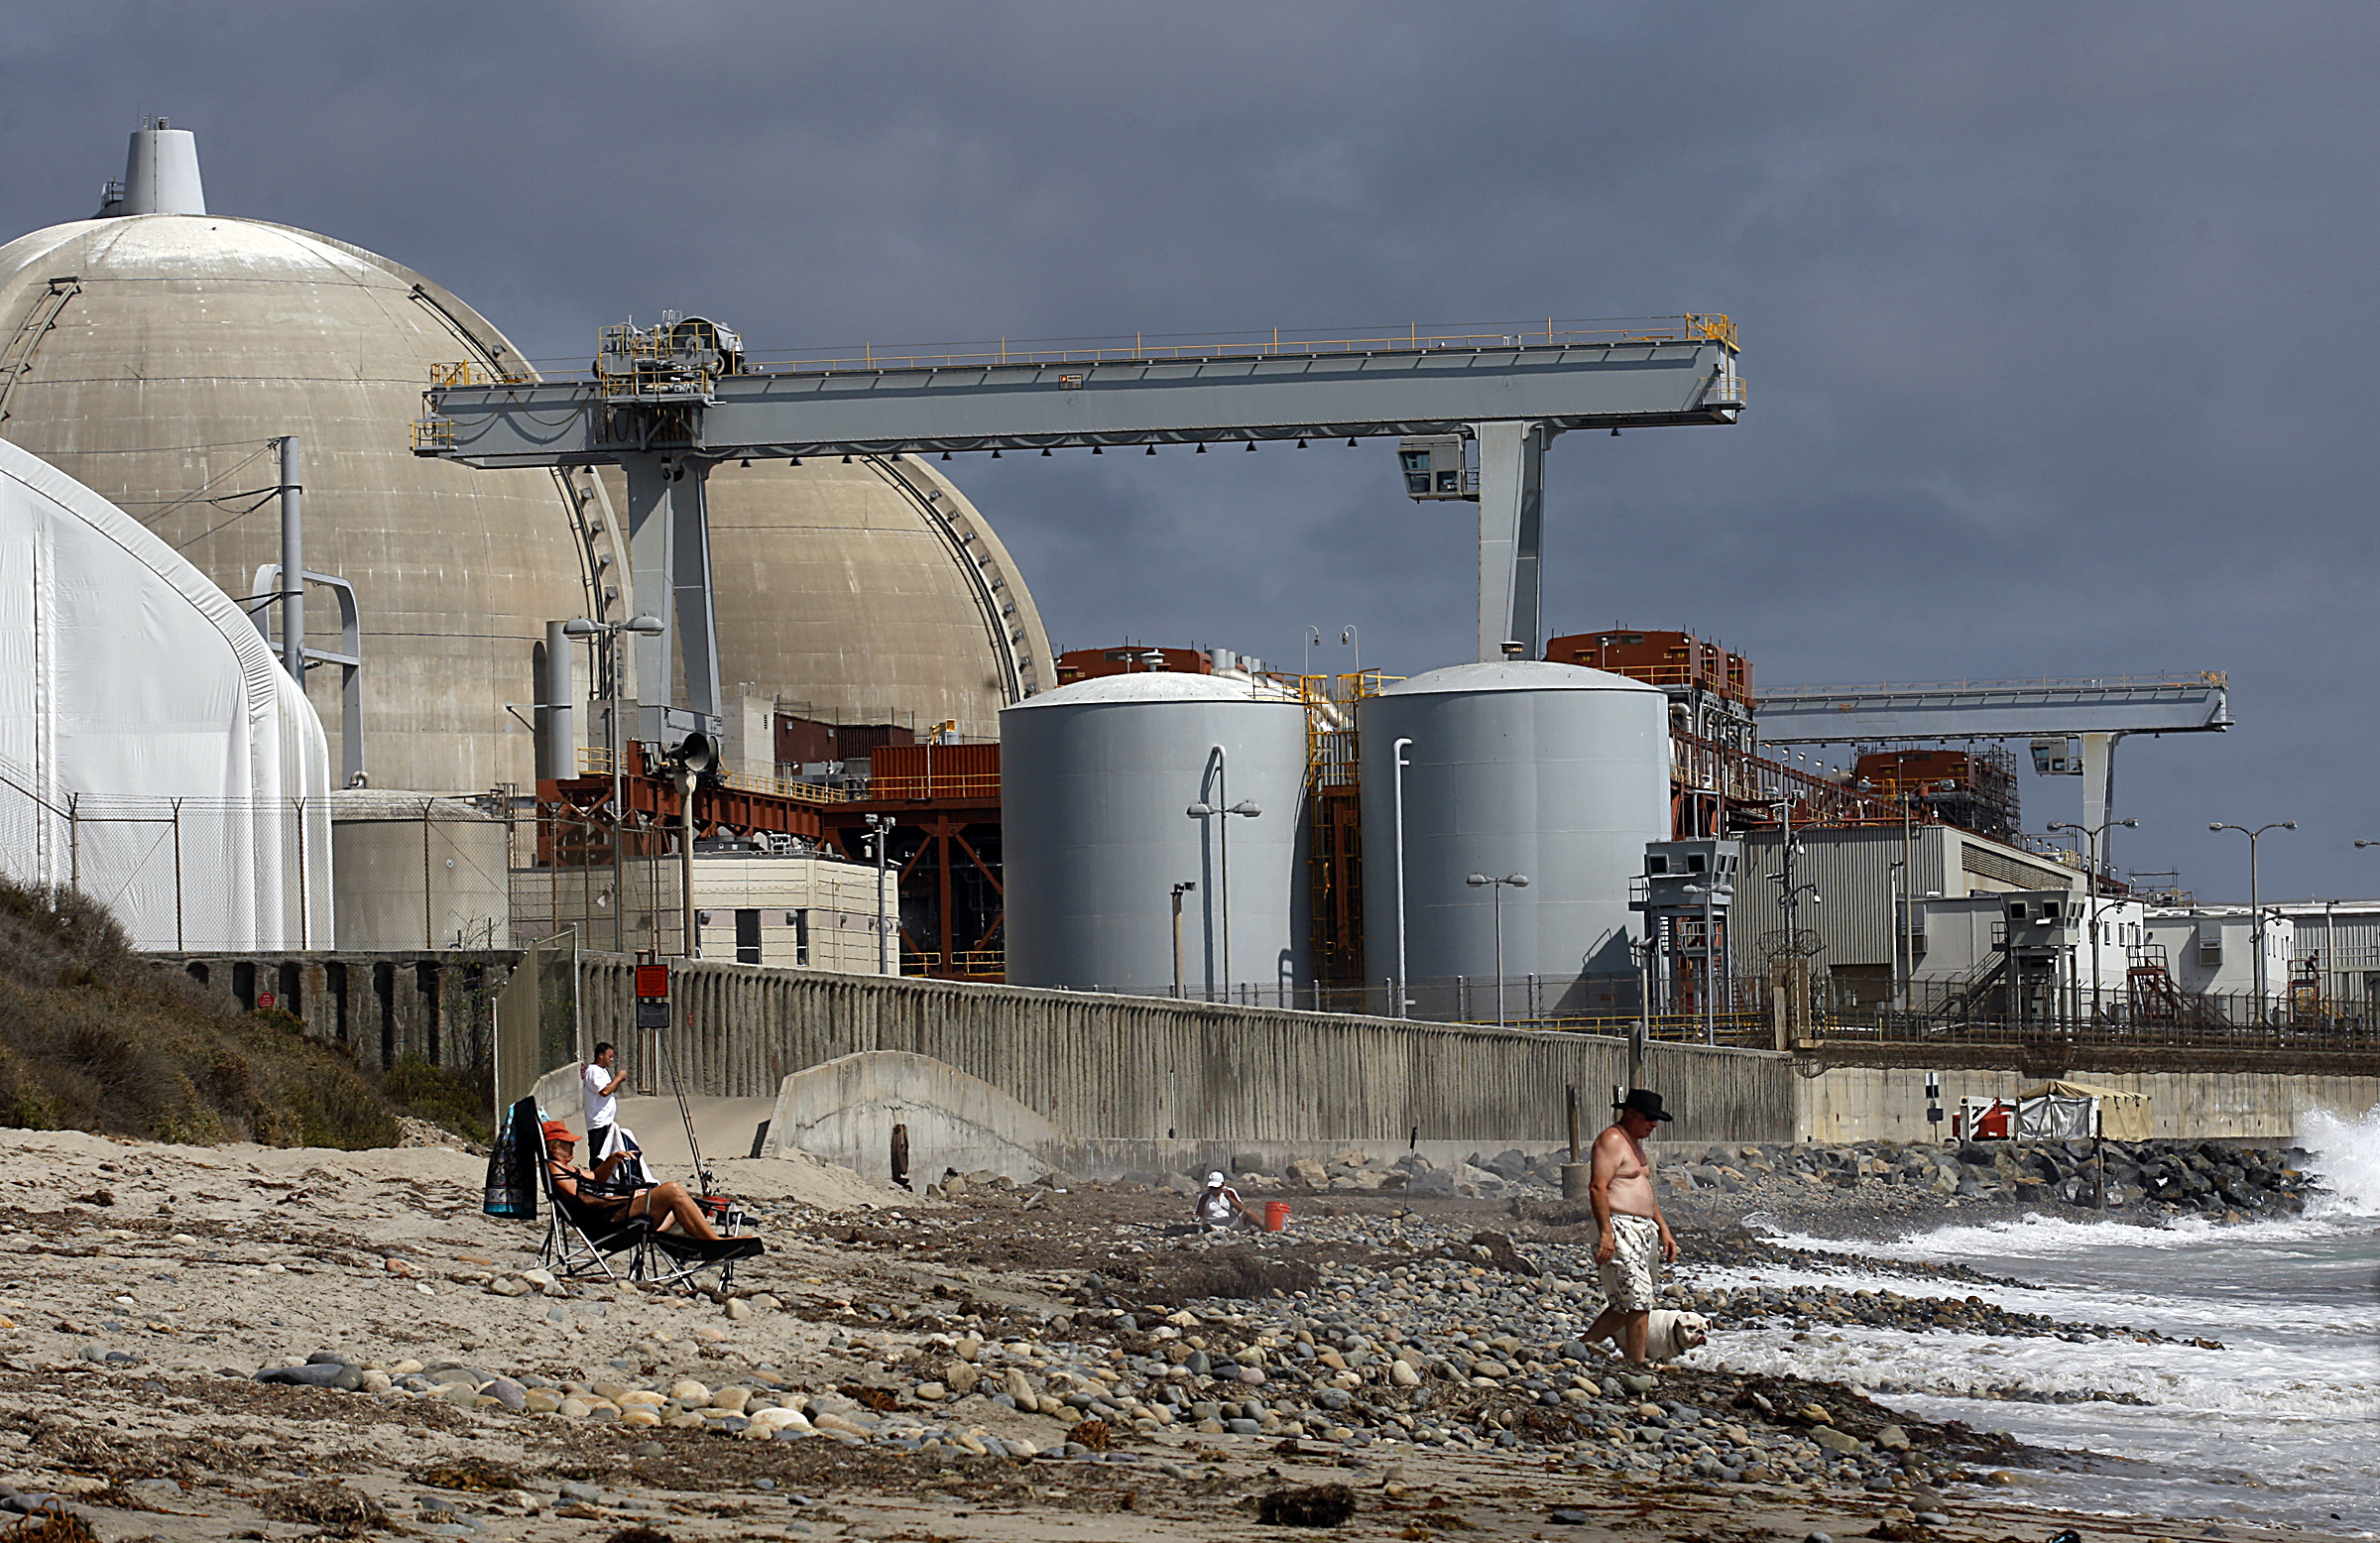 Portions of the Southern California Edison nuclear power plant in San Onofre have been shut down fo